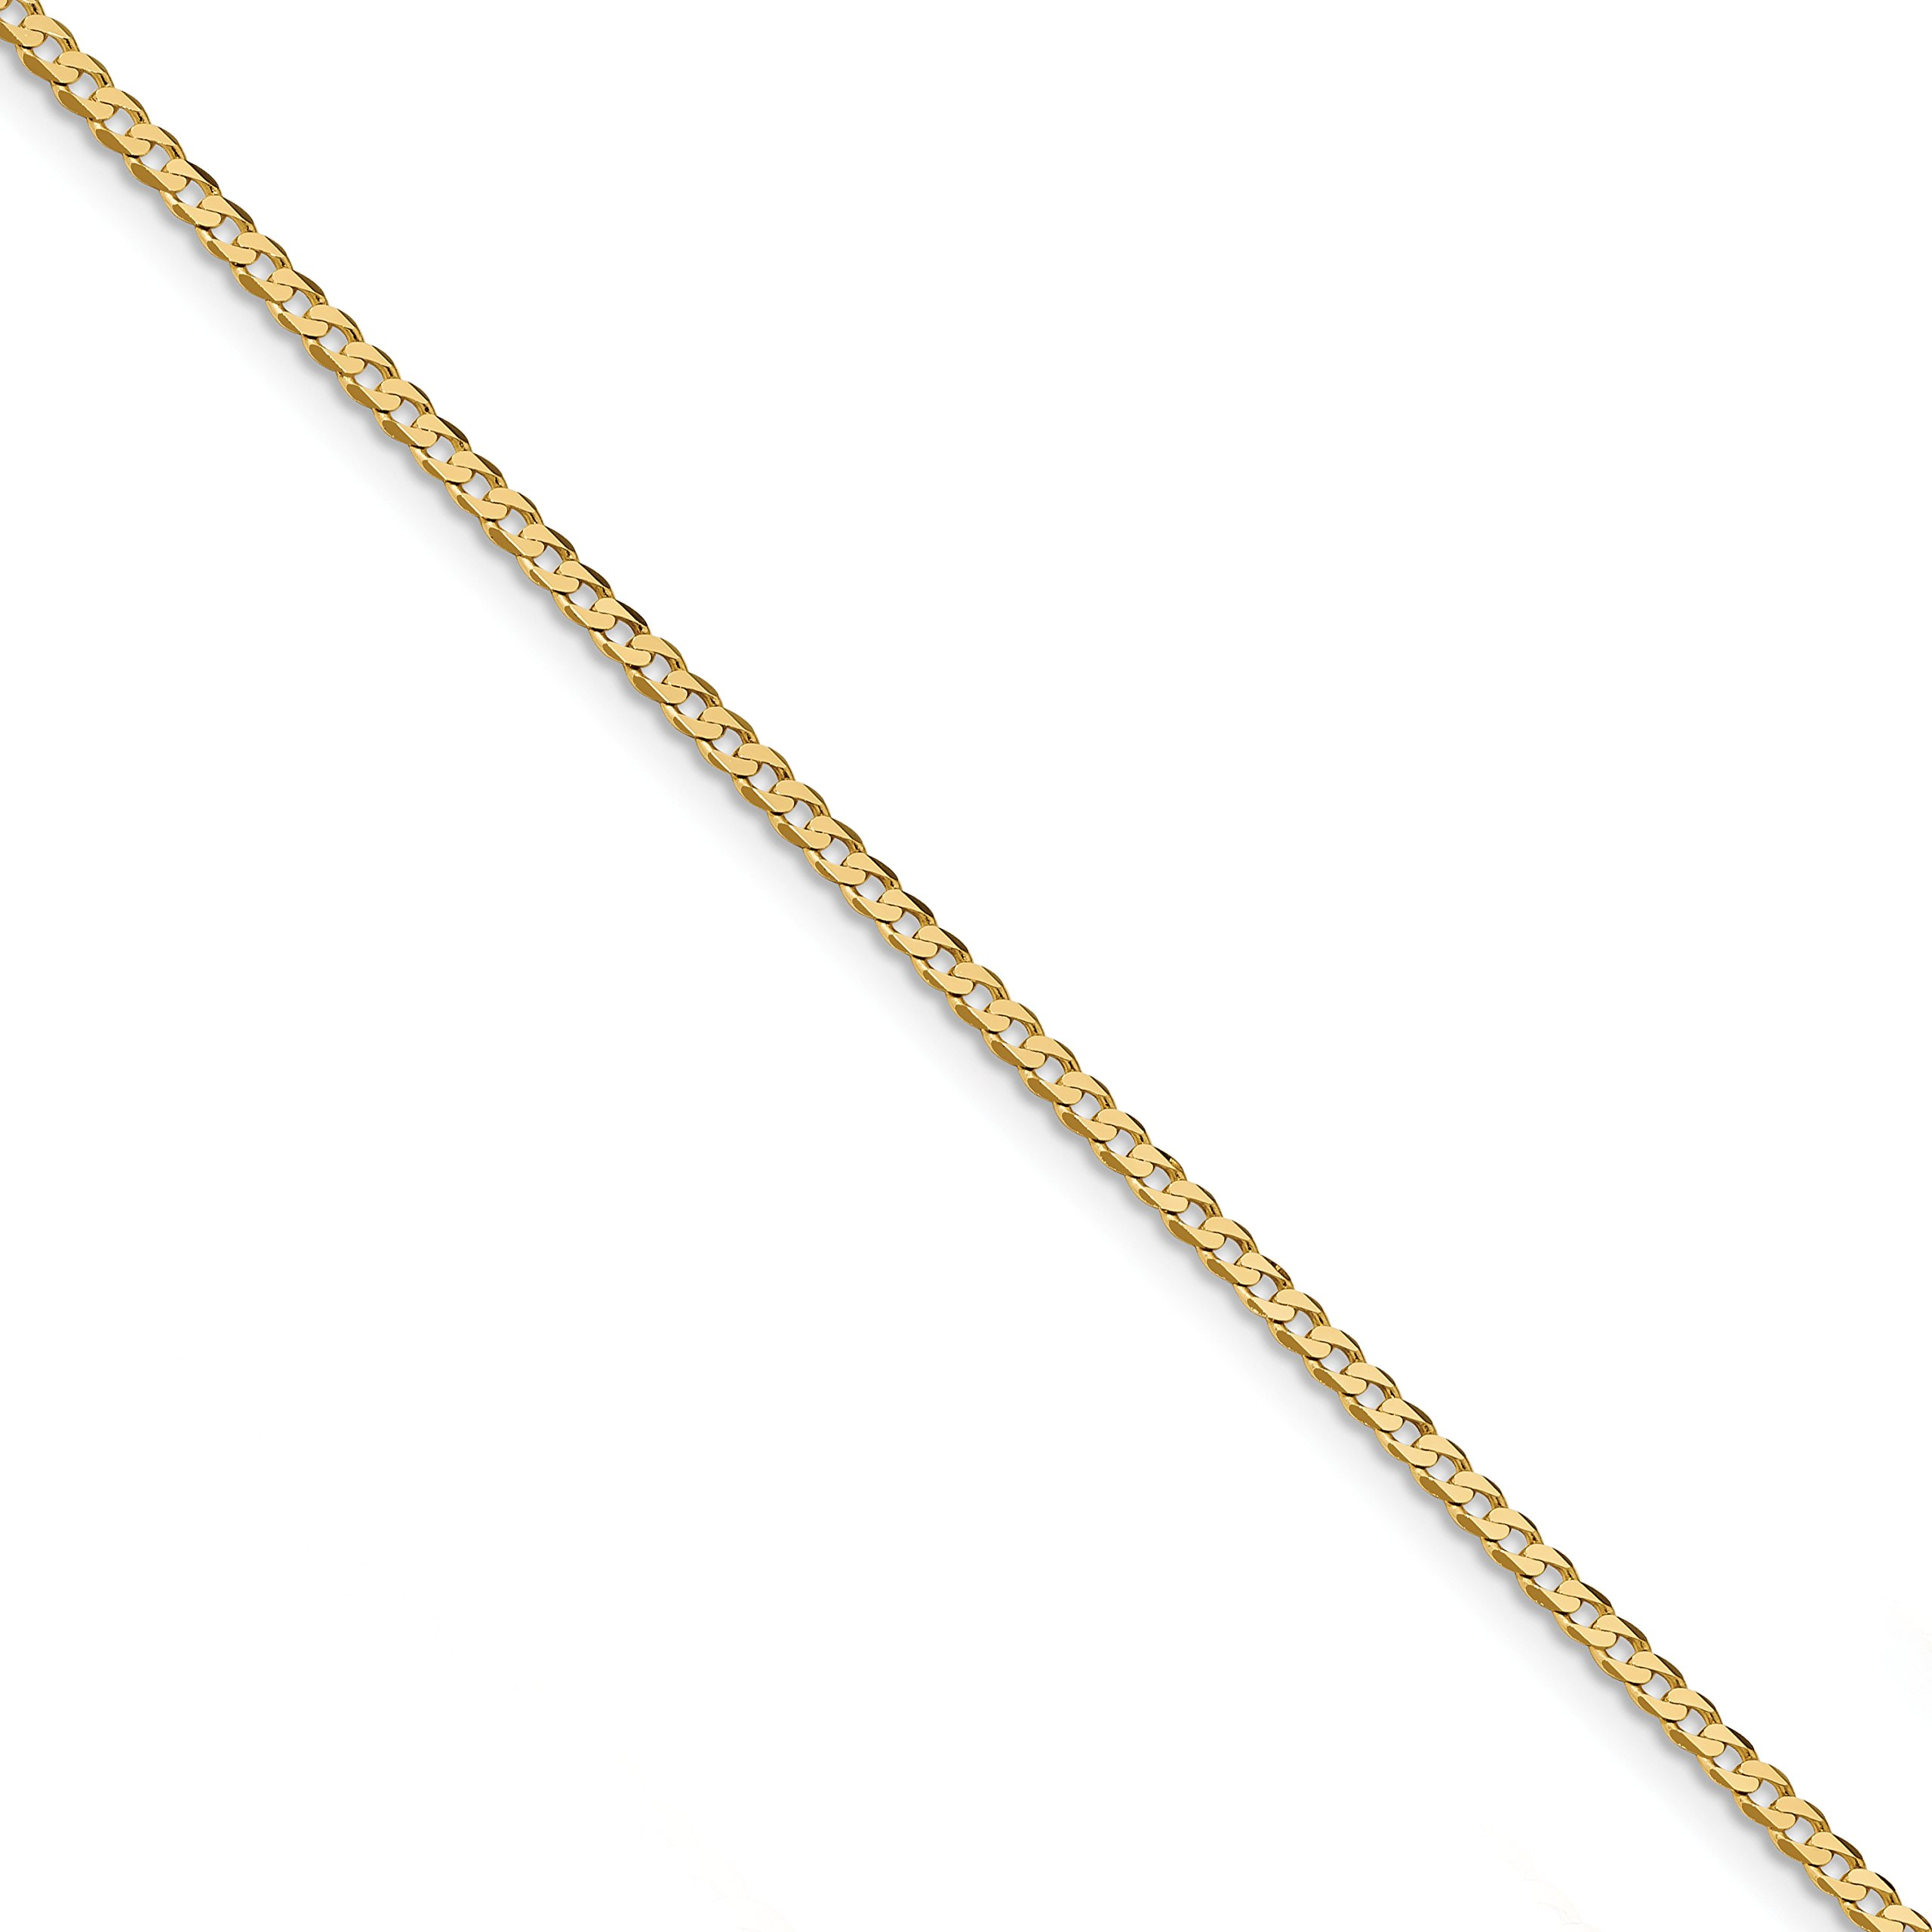 ICE CARATS 14k Yellow Gold 2.3mm Beveled Link Curb Bracelet Chain 7 Inch Rope Fine Jewelry Gift Set For Women Heart